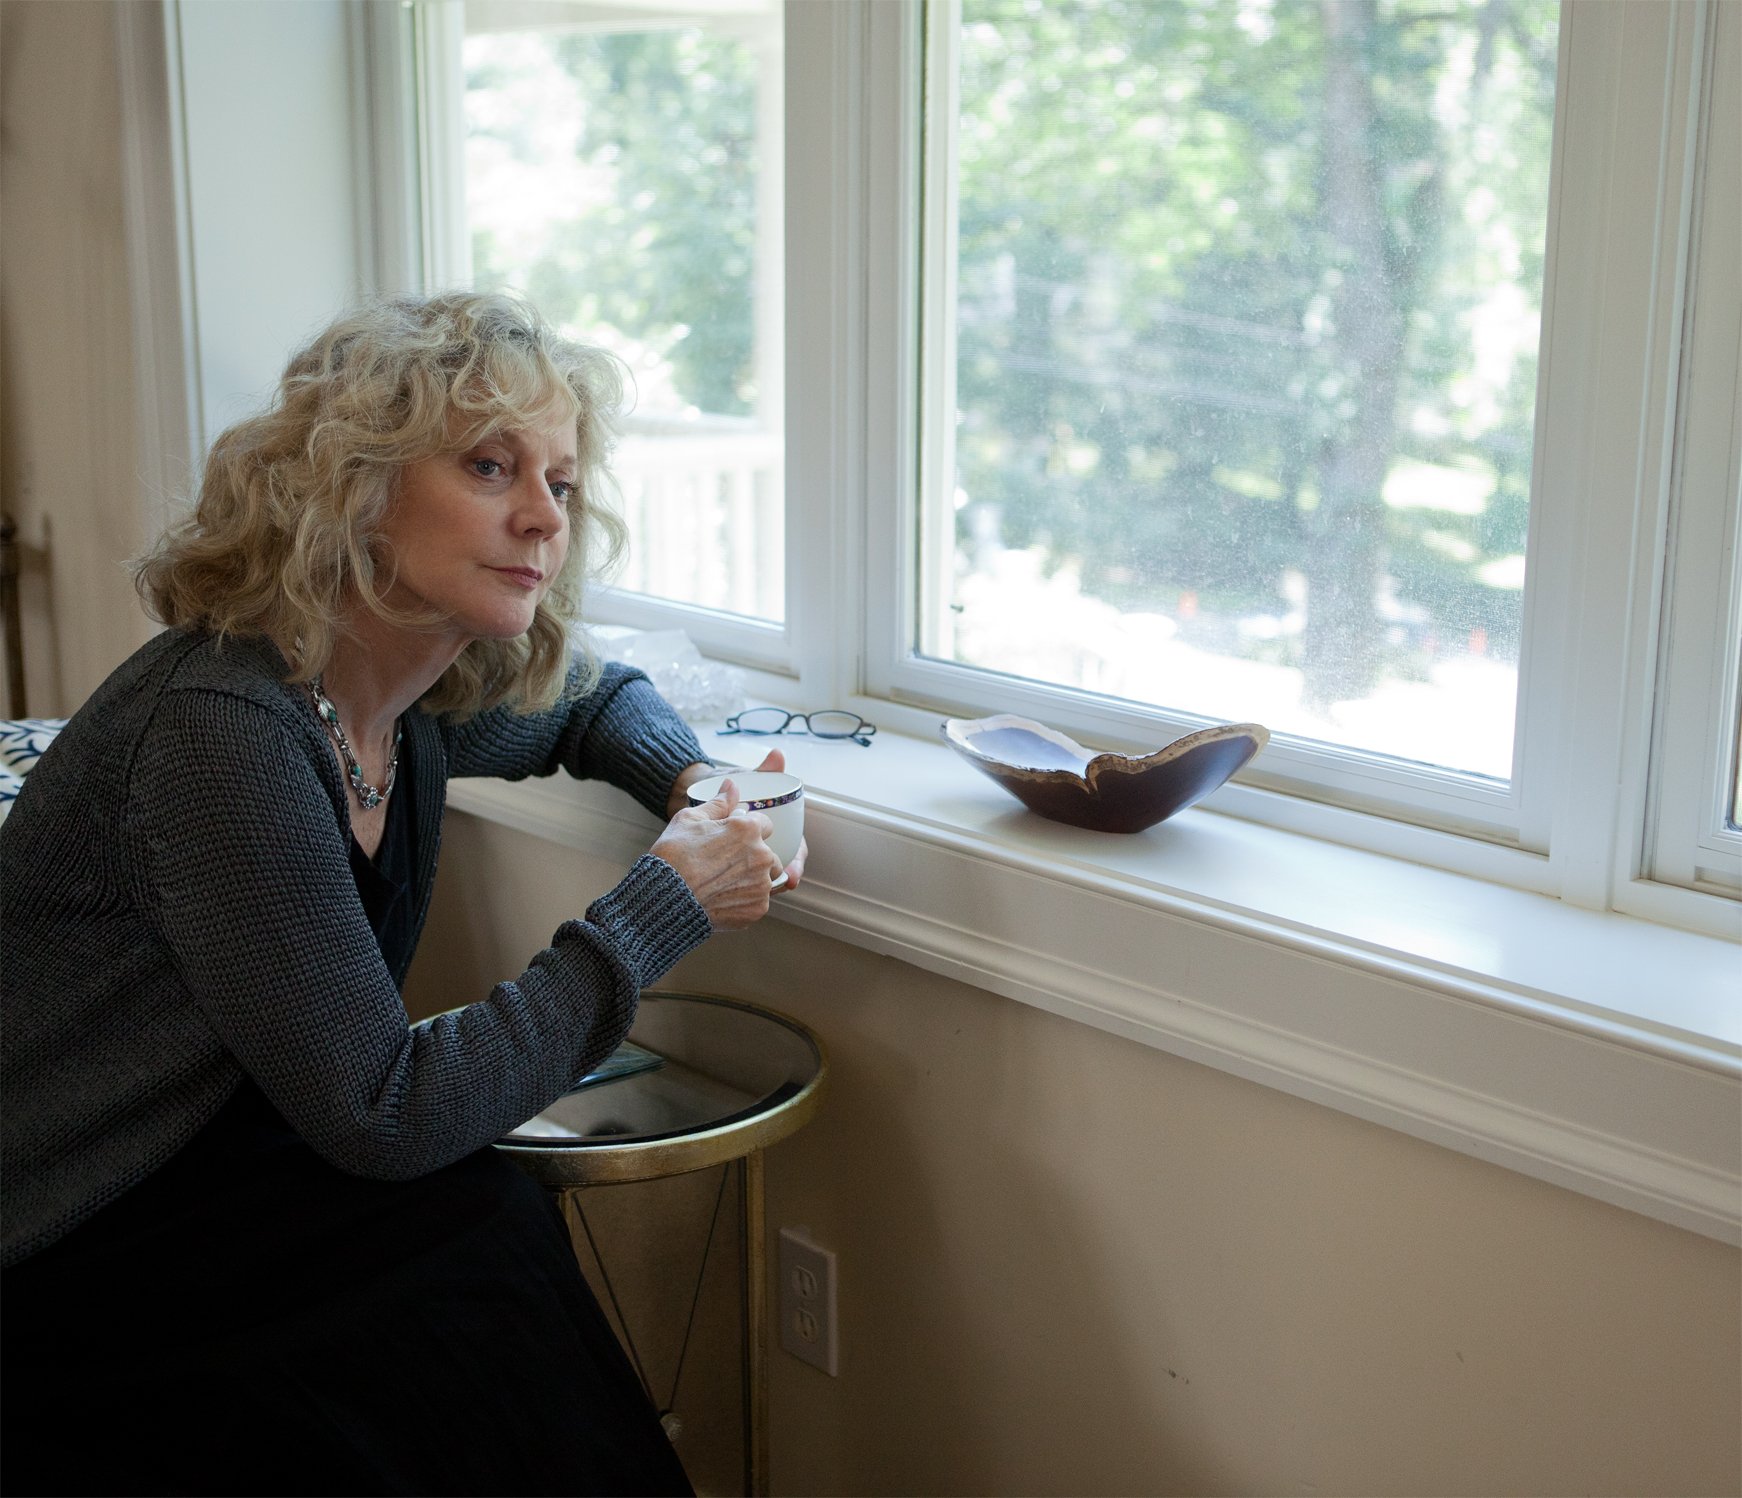 Blythe Danner in Hello, I Must Be Going